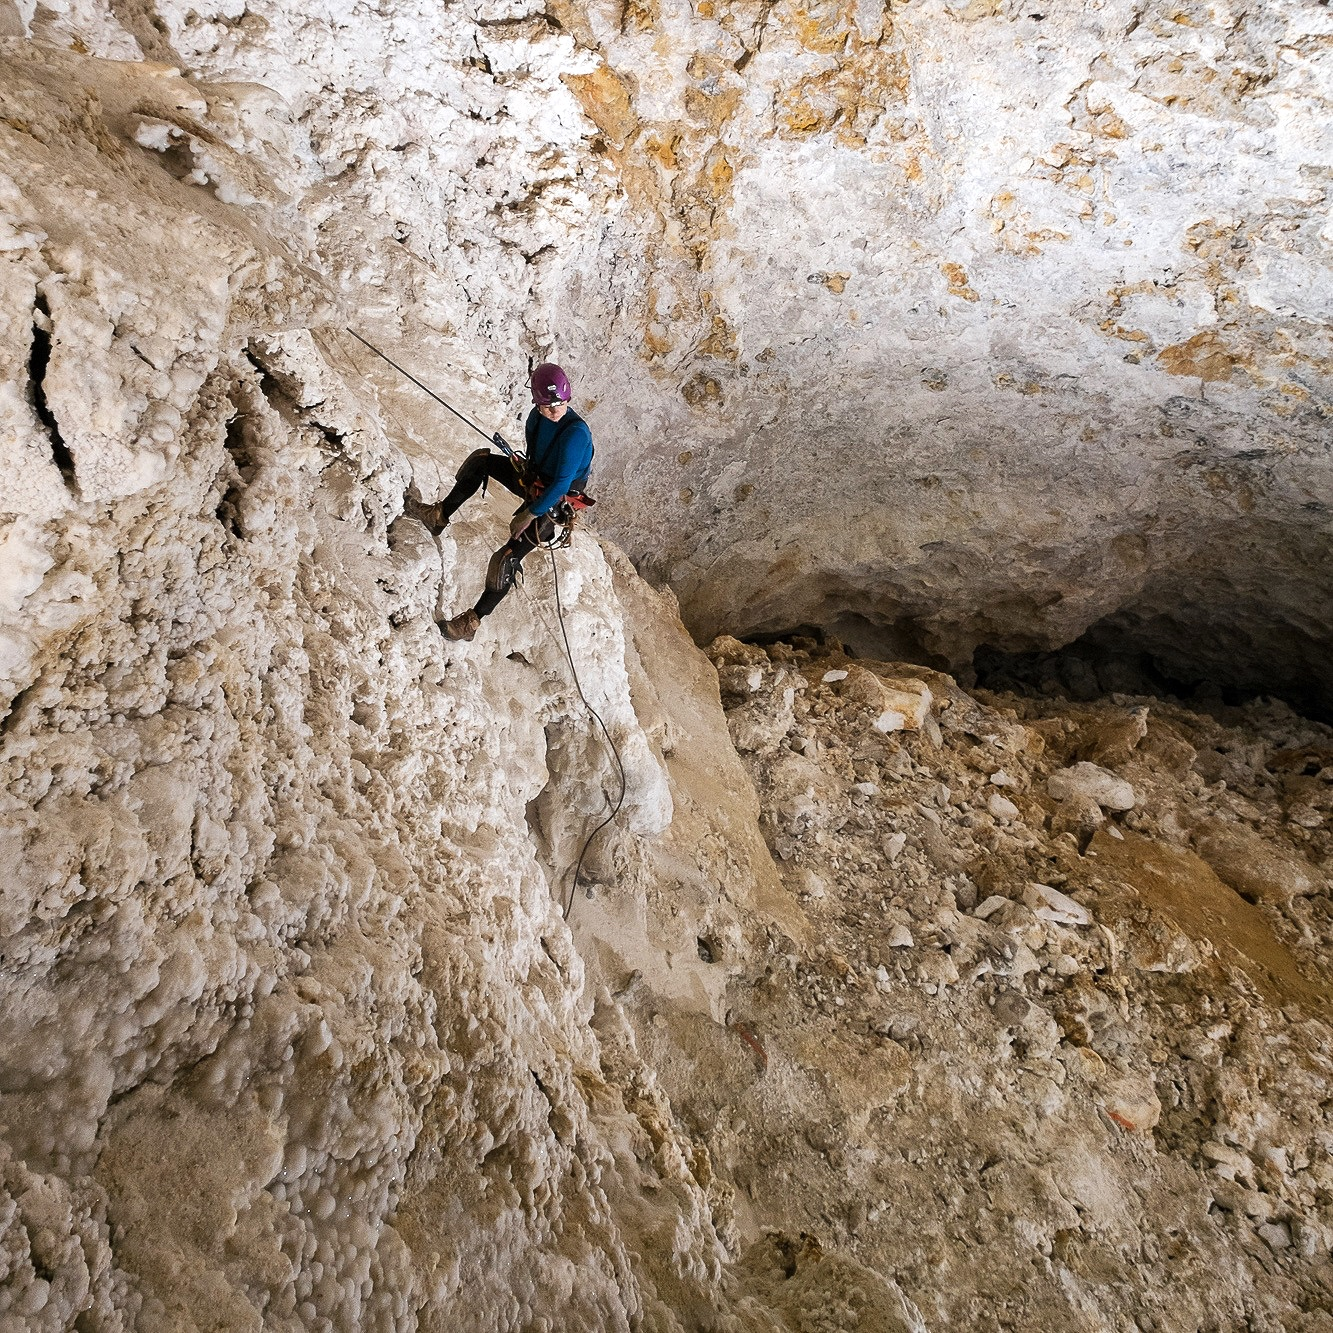 Vertical caving - Descending, ascending, and mid-rope maneuvers are important skills for exploration when the angle increases.